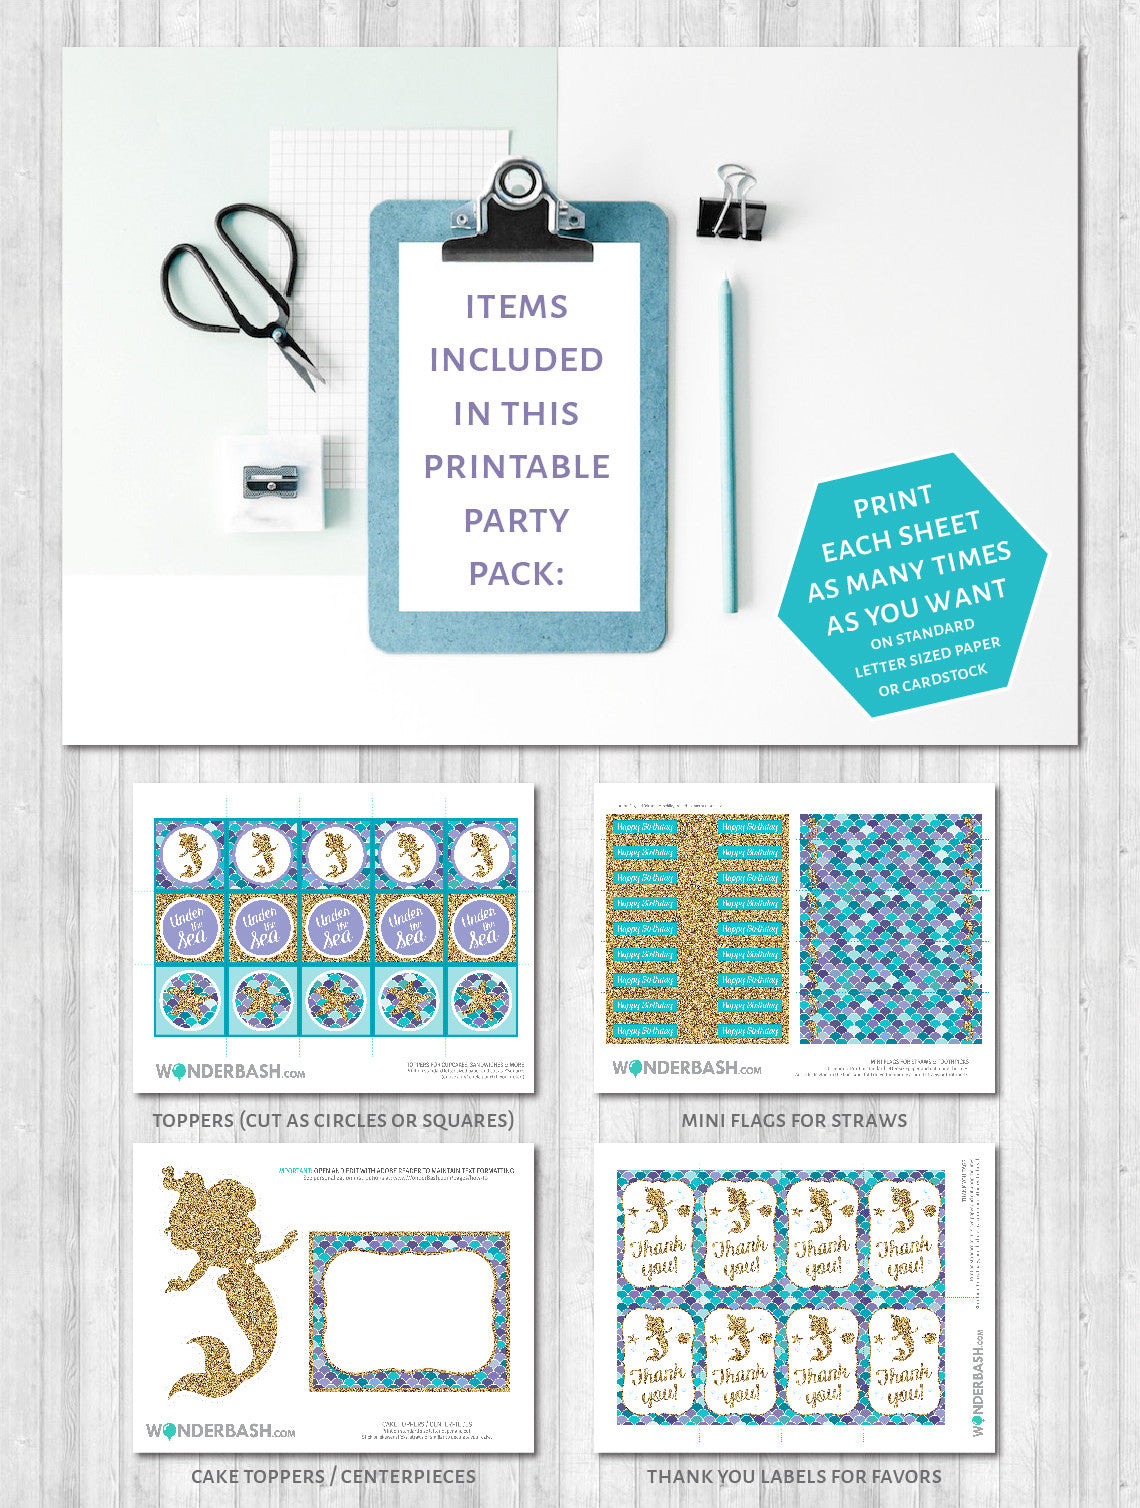 Mermaid Party Printable Decor Pack: What's included